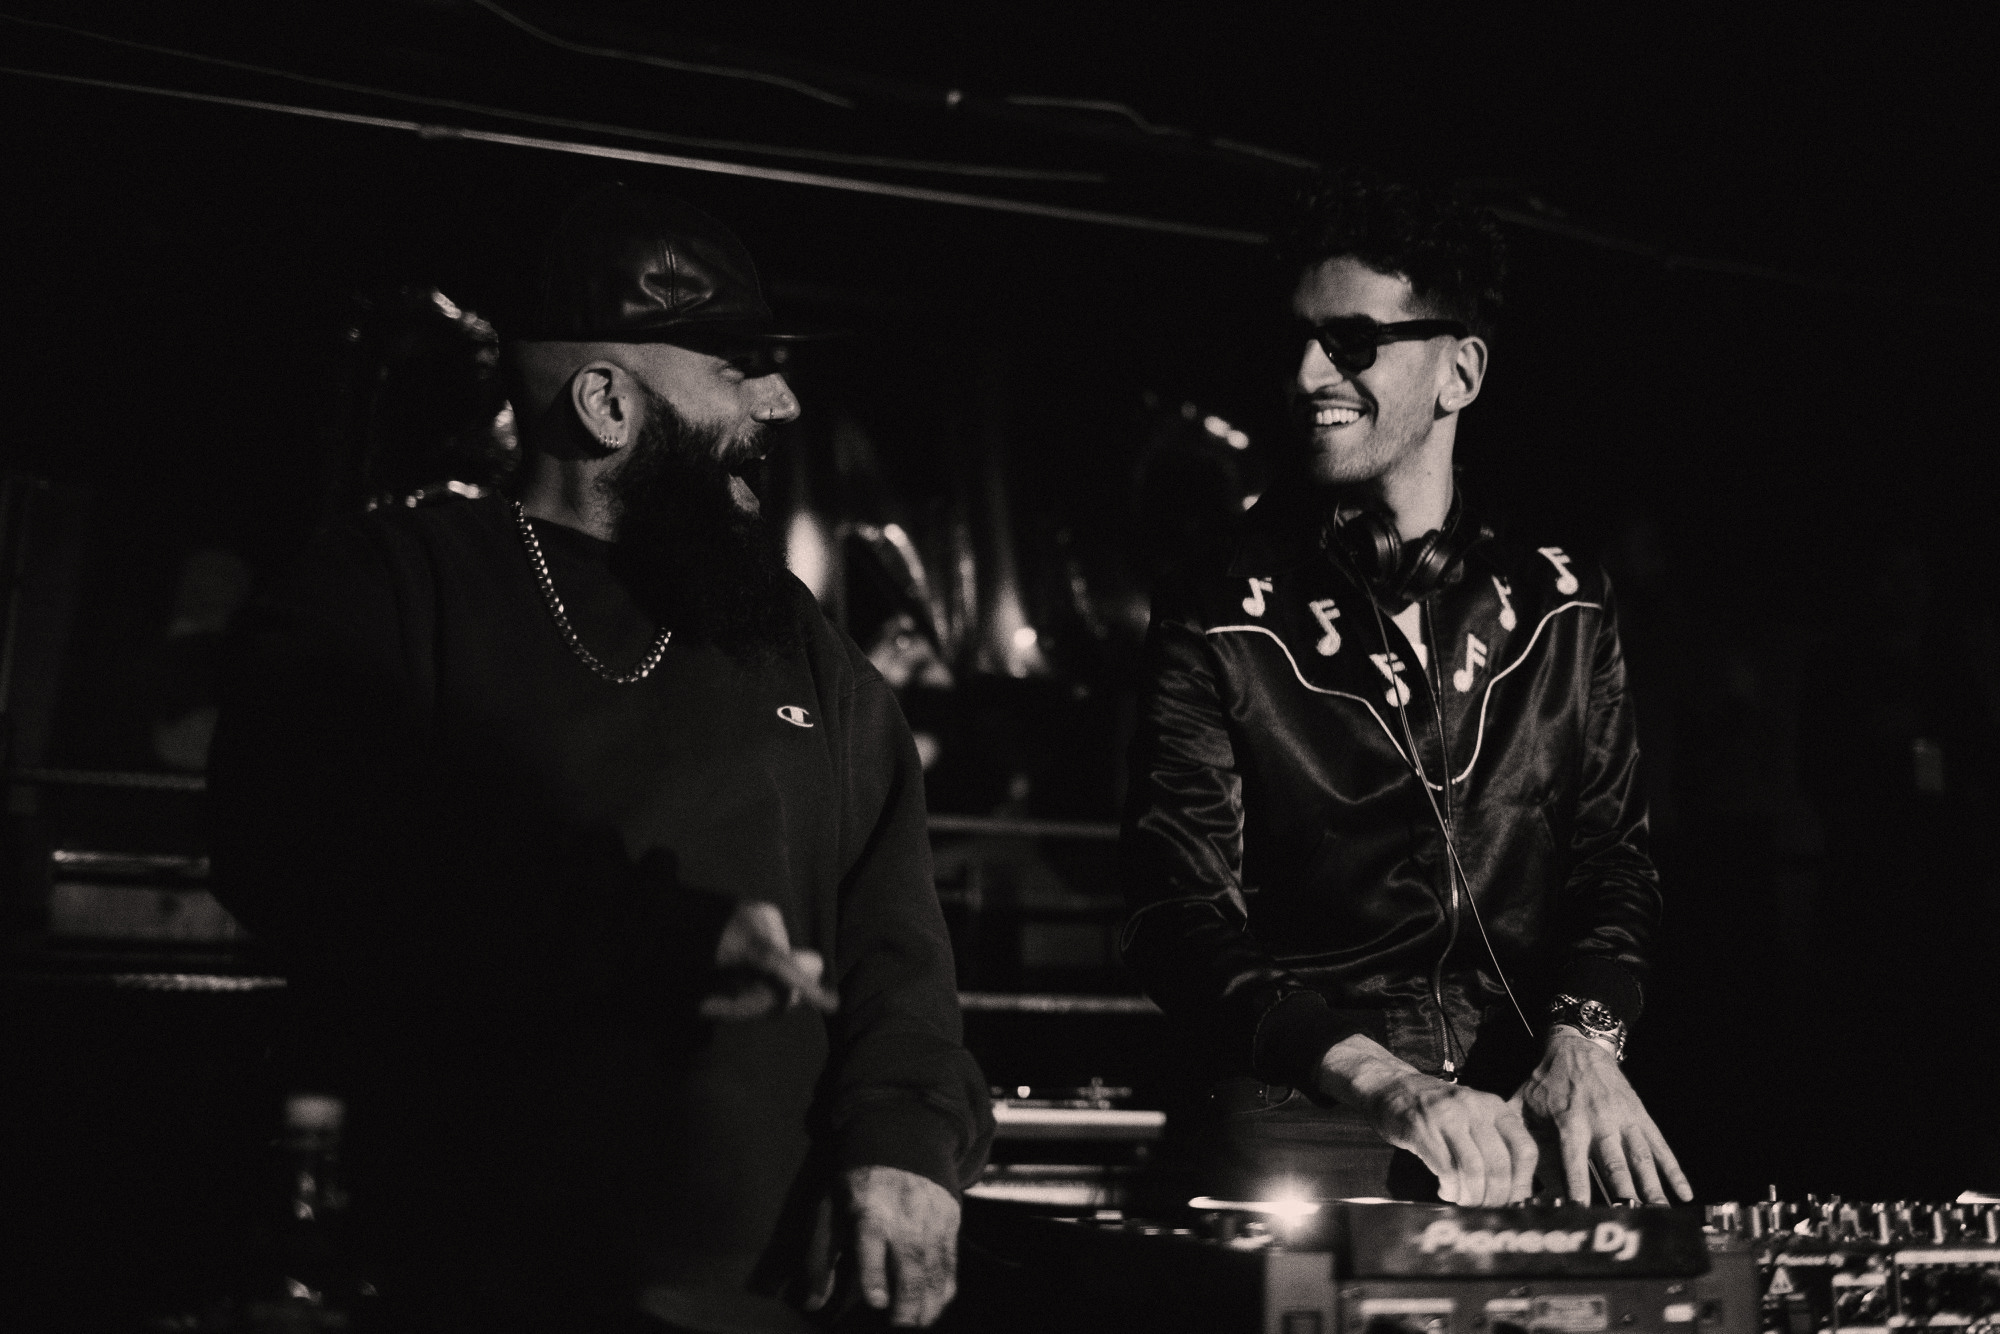 Chromeo - From cult 80s fetishists on 2004's She's In Control to indie blog darlings on 2007's Fancy Footwork, to international touring sensations on 2010's Business Casual, to bona fide pop stars on 2014's White Women, the Funklordz, Chromeo is an artist that everyone has been listening to. Collective Minds booked the duo for their Asia tour with dates in Hong Kong, Ho Chi Minh City, Kuala Lumpur and Singapore.